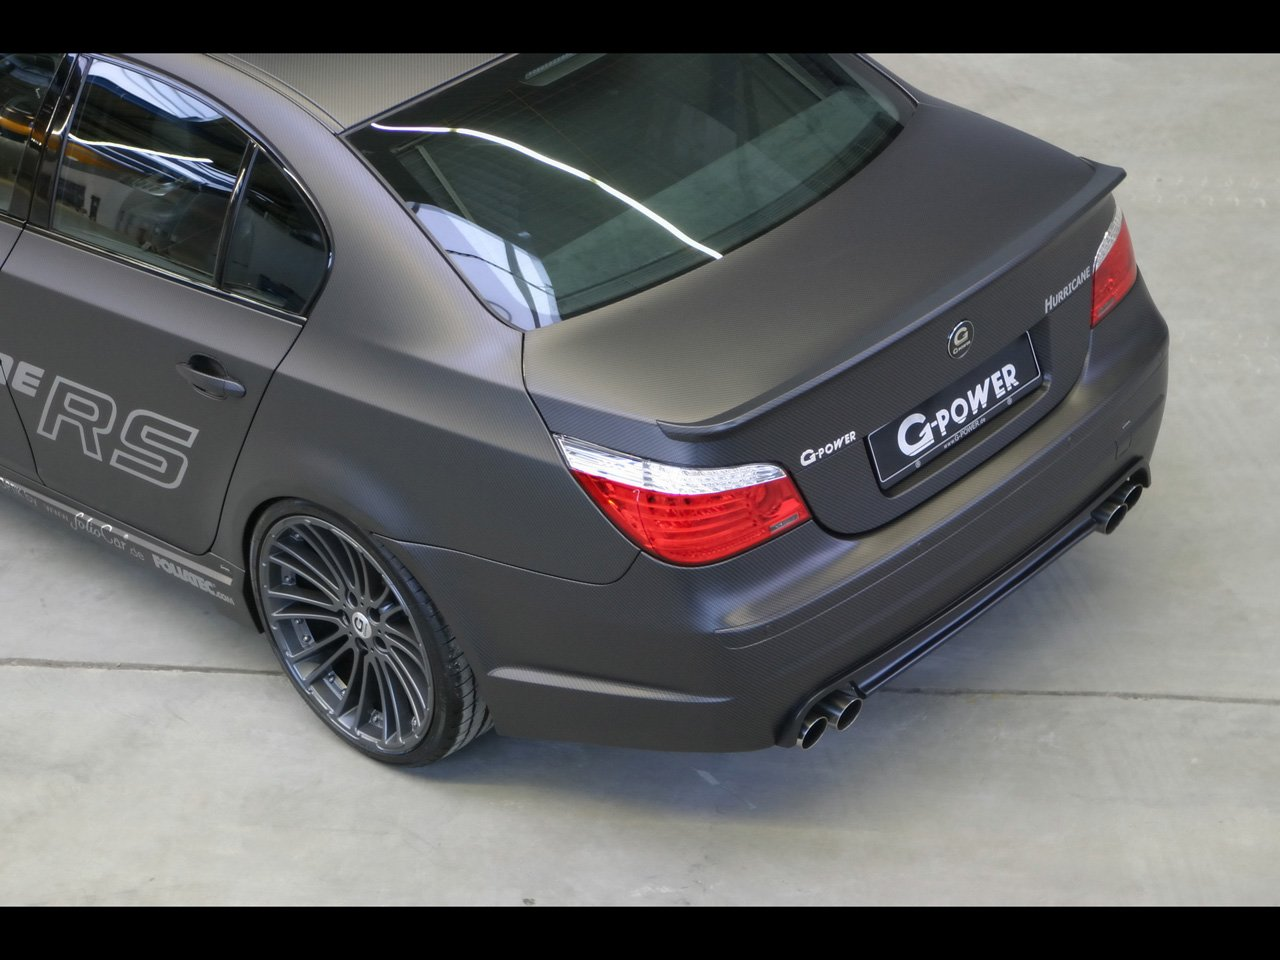 Latest Cars Riccars Design Bmw M5 Hurricane Best Car Wallpapers Free Download